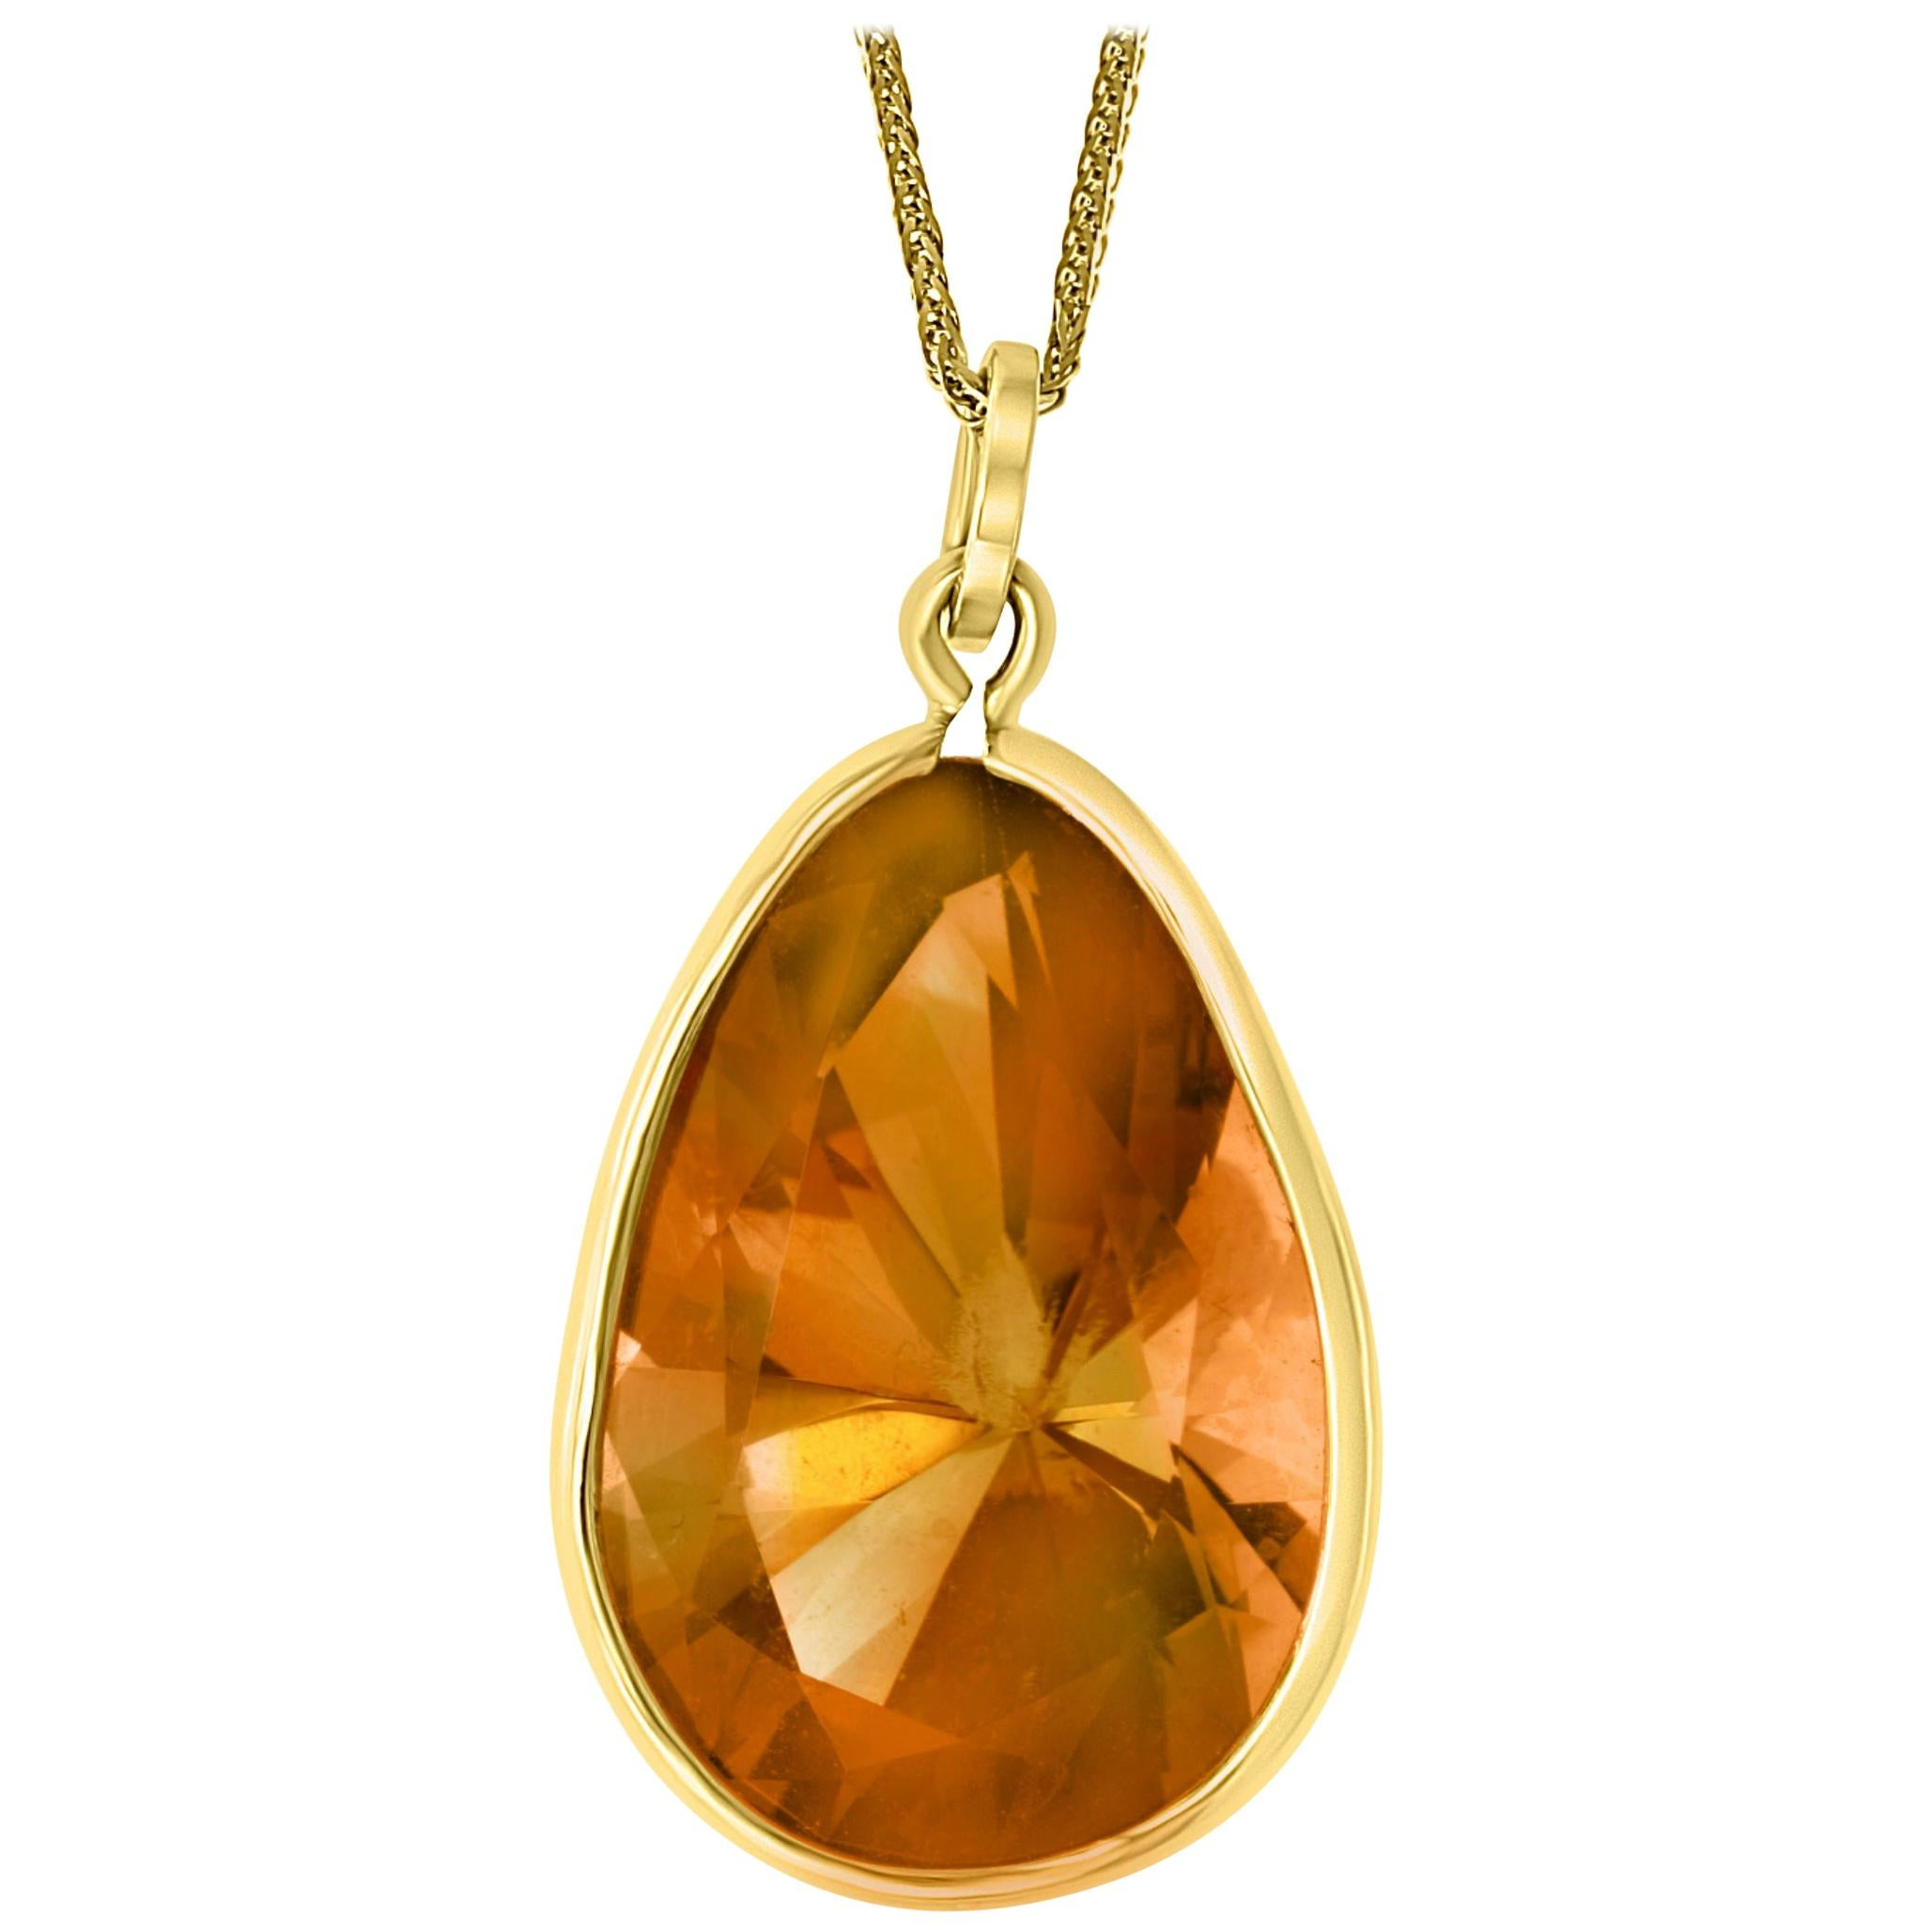 19 Carat Pear Shape Citrine Pendent or Necklace 14 Karat Yellow Gold with Chain